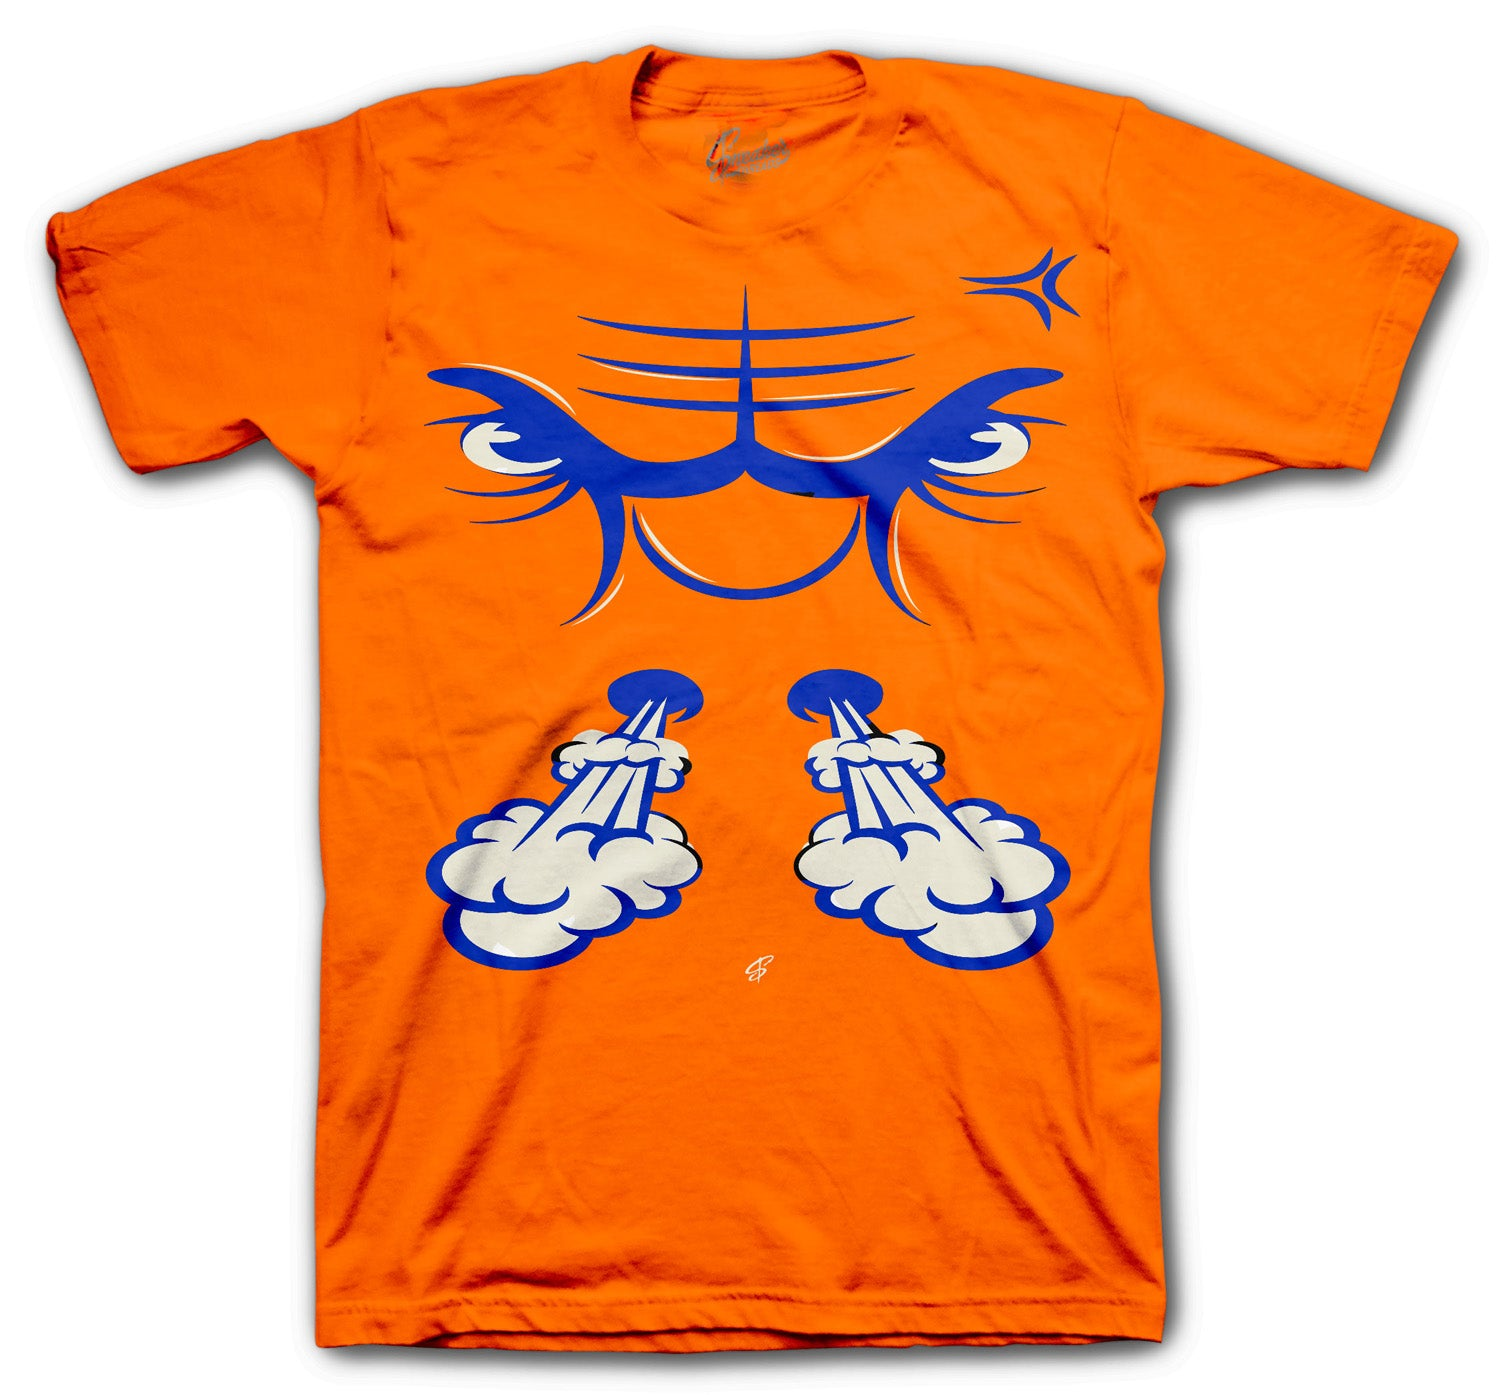 Jordan 3 retro sneakers have matching shirts designed to match with the retro Jordan knicks